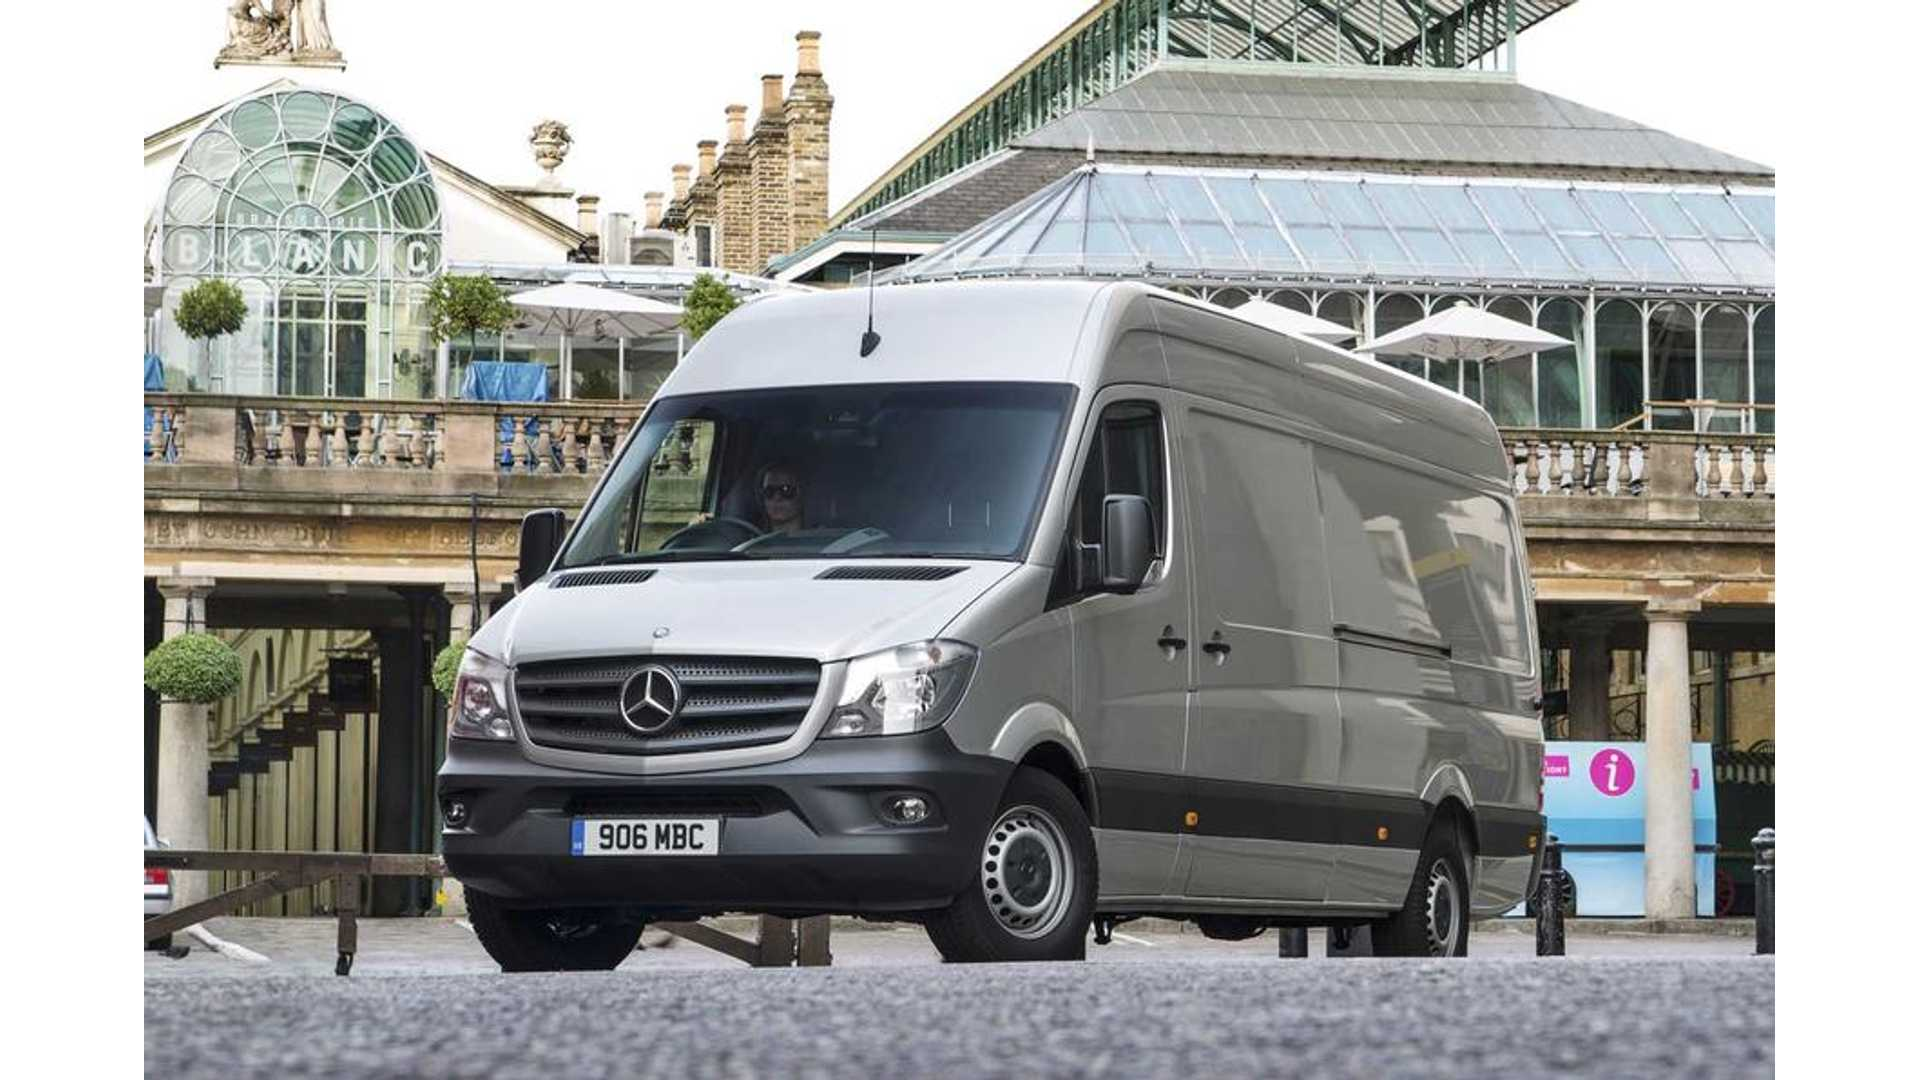 412b054908bc87 Daimler Decides On Duesseldorf For Production Of Electric Mercedes-Benz  Sprinter